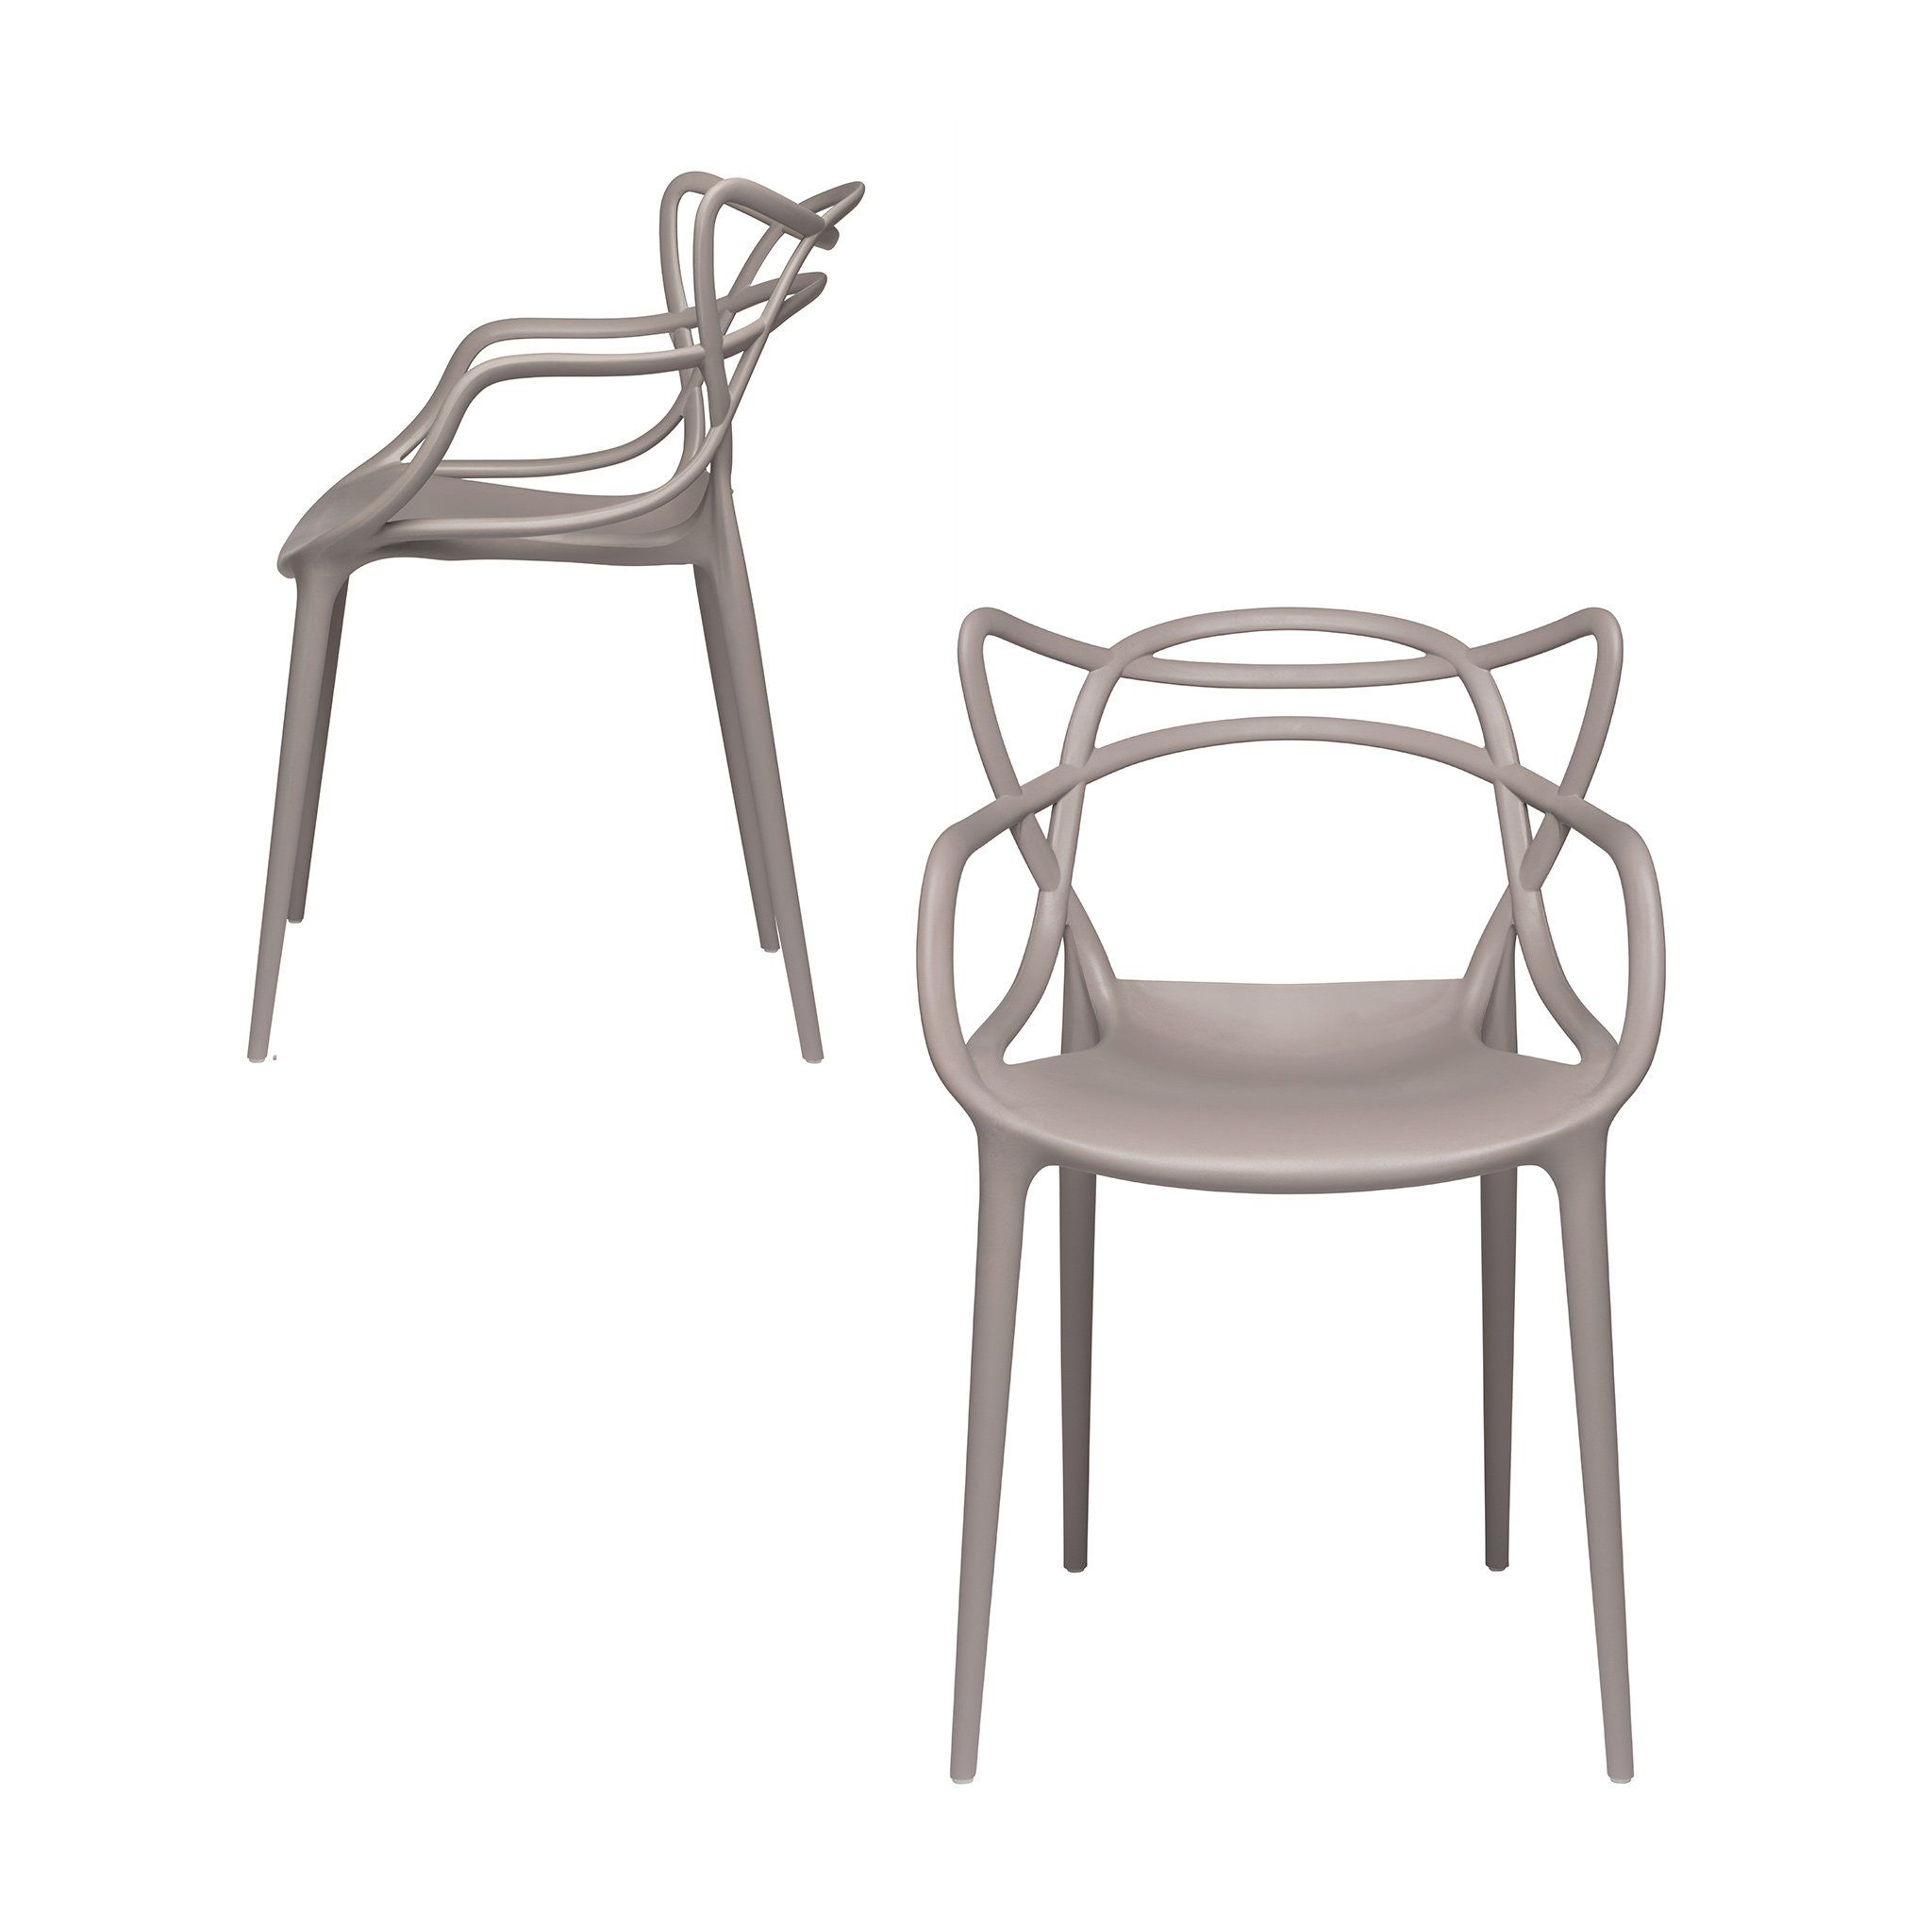 10 Of The Most Iconic Scandinavian Designs Their Stories